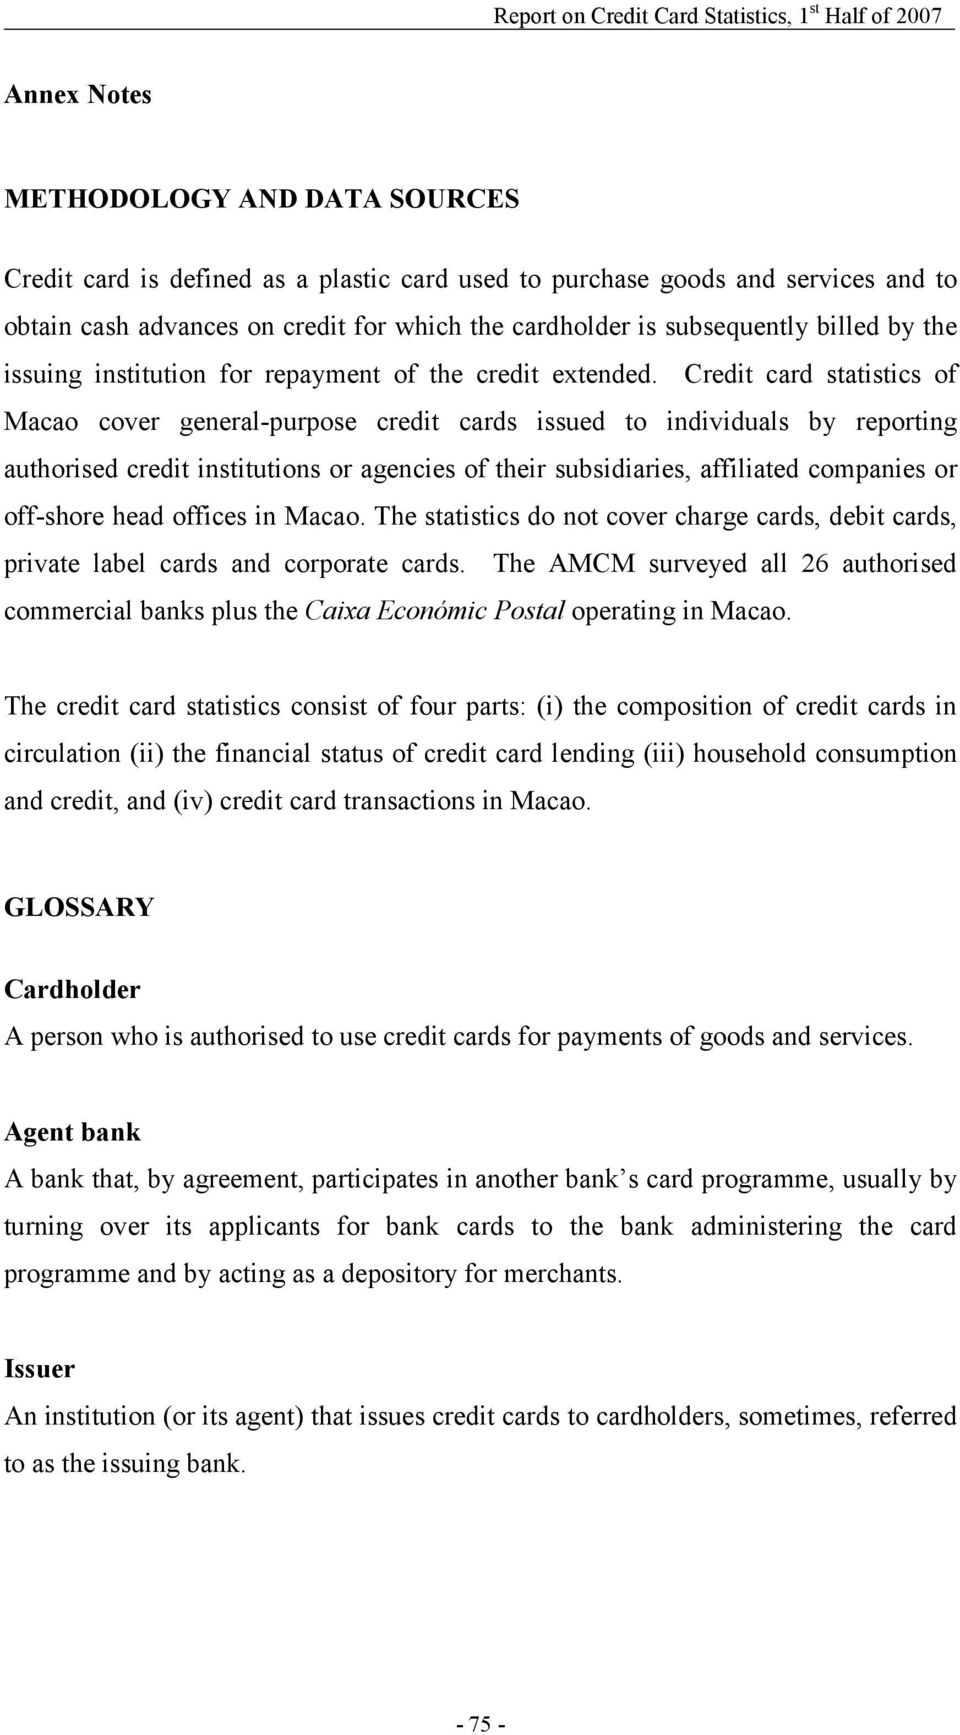 Credit card statistics of Macao cover general-purpose credit cards issued to individuals by reporting authorised credit institutions or agencies of their subsidiaries, affiliated companies or